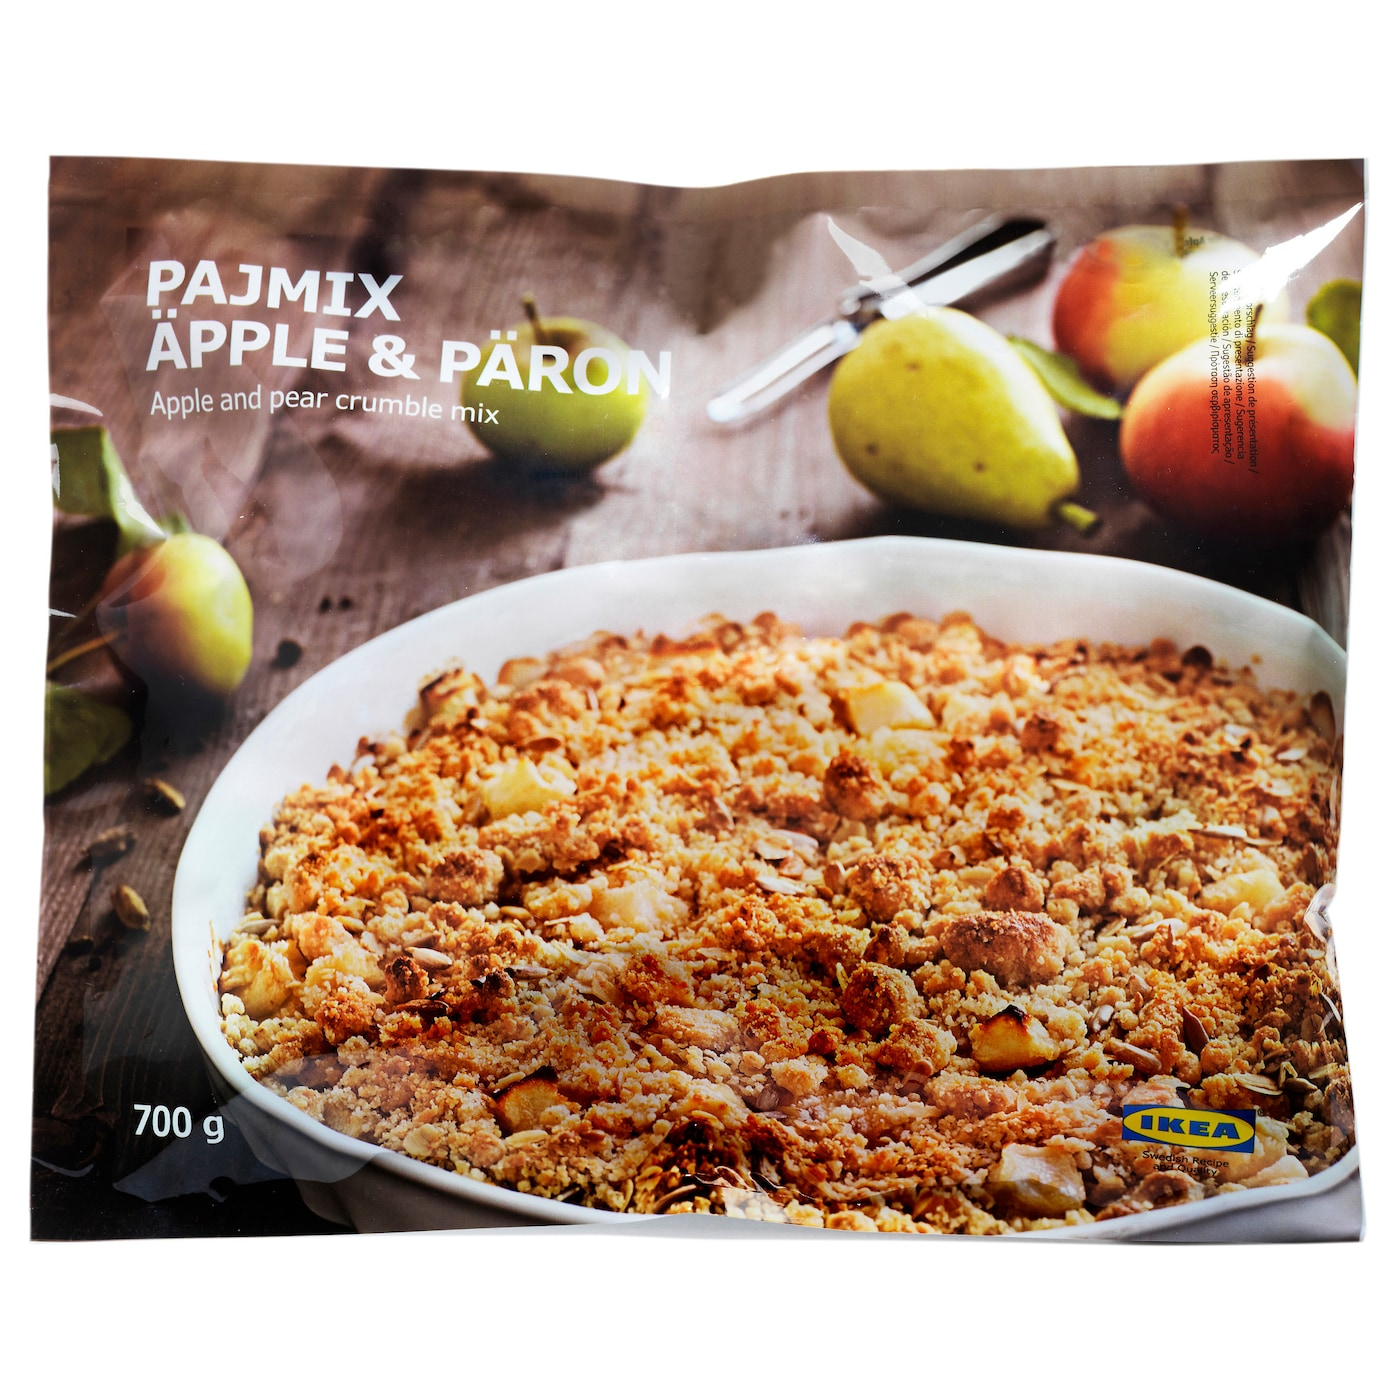 IKEA PAJMIX ÄPPLE & PÄRON apple & pear crumble, frozen